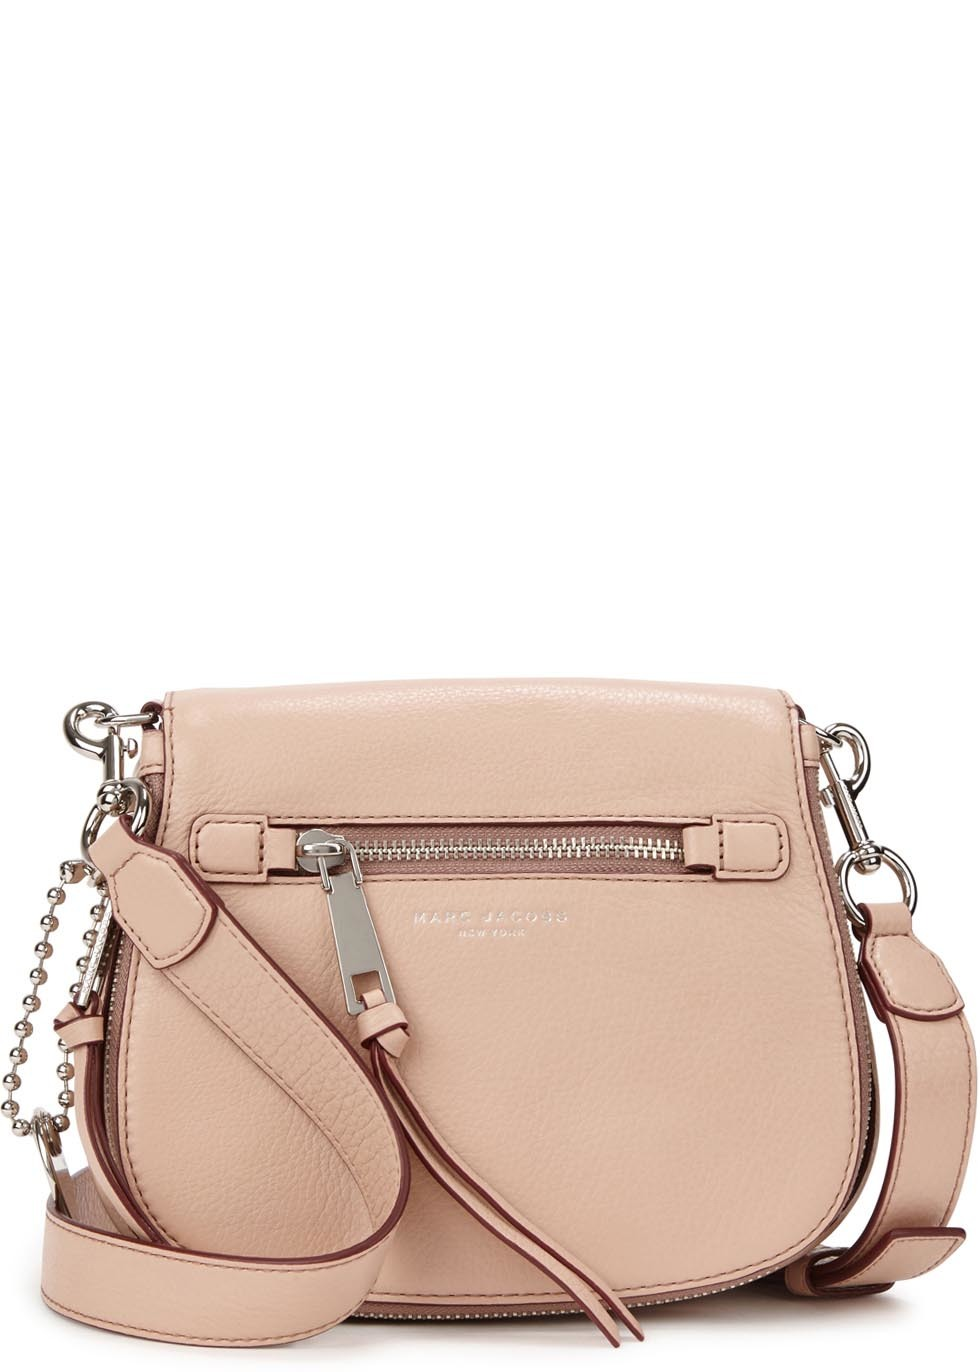 Recruit Small Blush Leather Shoulder Bag - predominant colour: blush; secondary colour: silver; occasions: casual, creative work; type of pattern: standard; style: saddle; length: across body/long; size: small; material: leather; pattern: plain; finish: plain; embellishment: chain/metal; season: s/s 2016; wardrobe: highlight